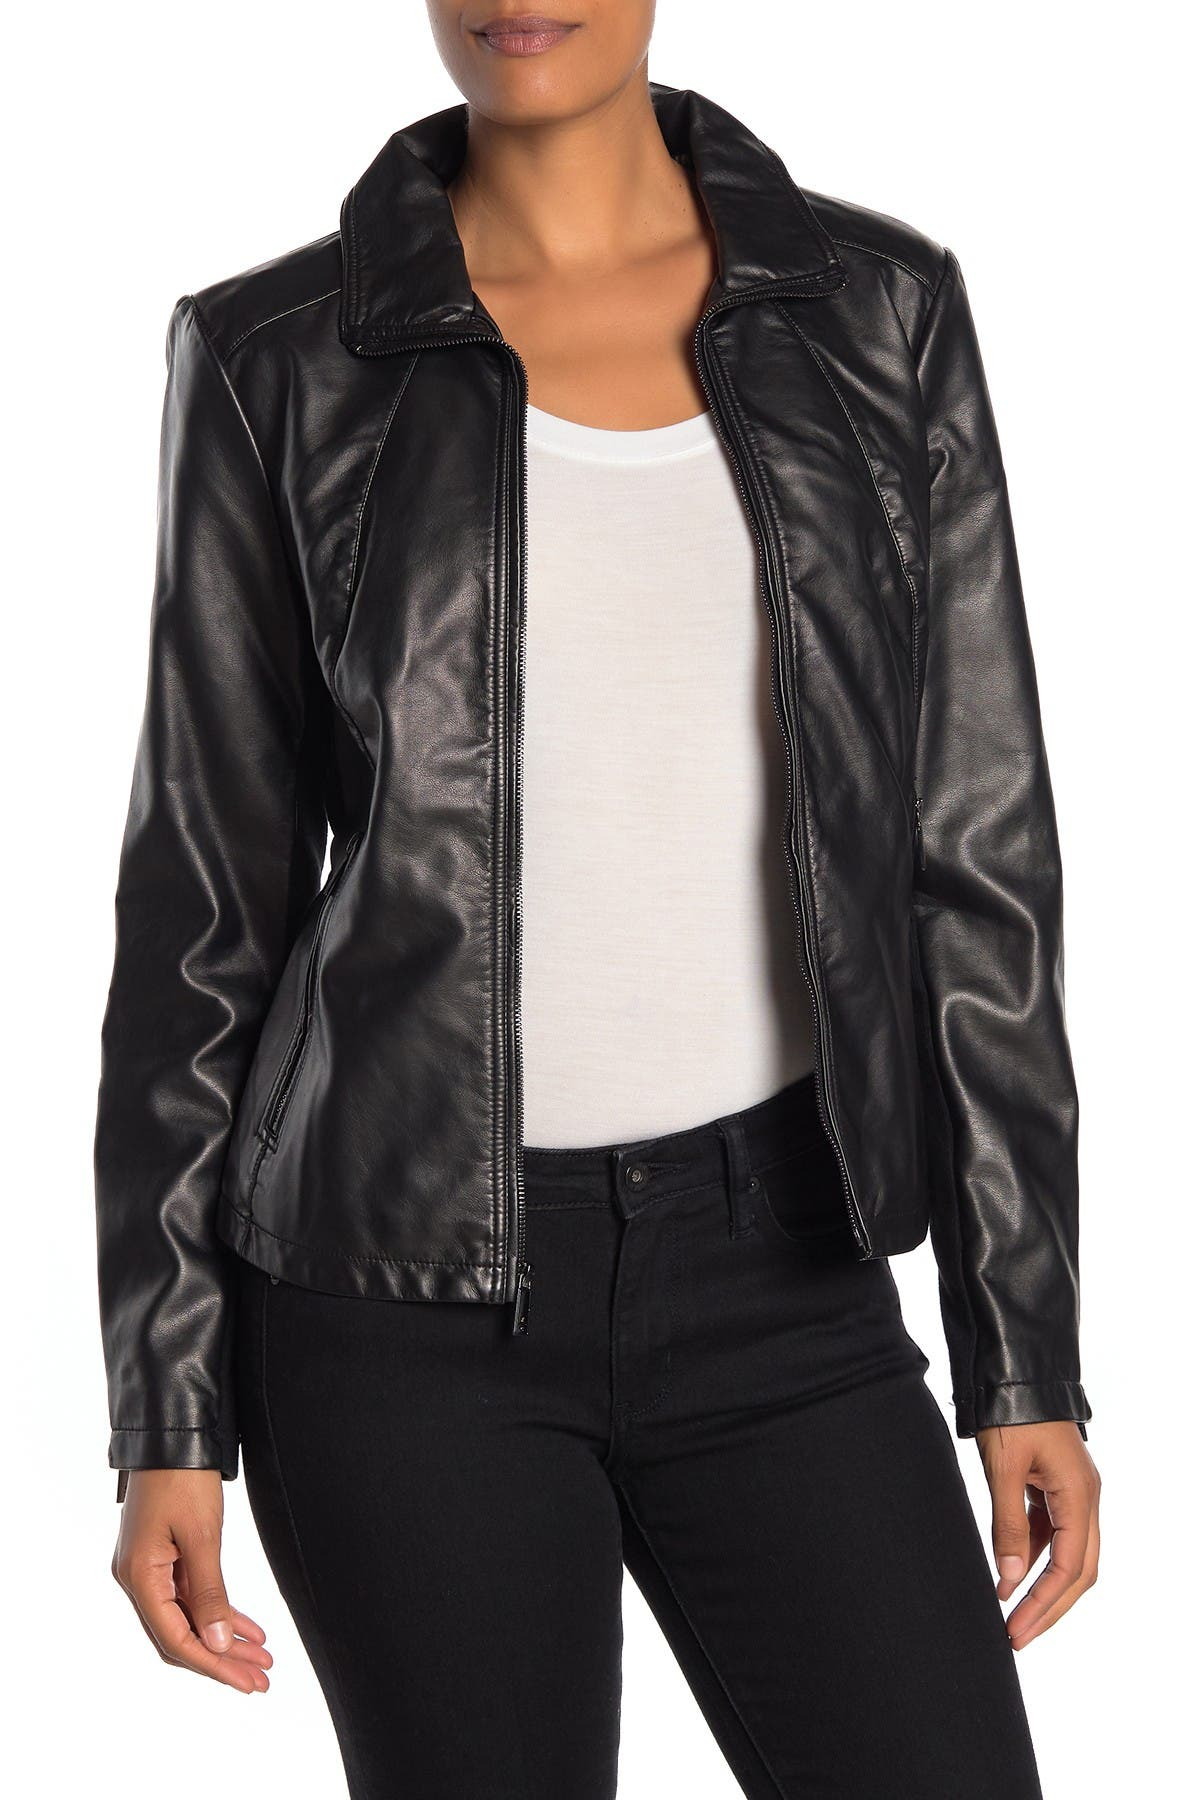 Kenneth Cole Womens Zip Front Faux Leather JKT